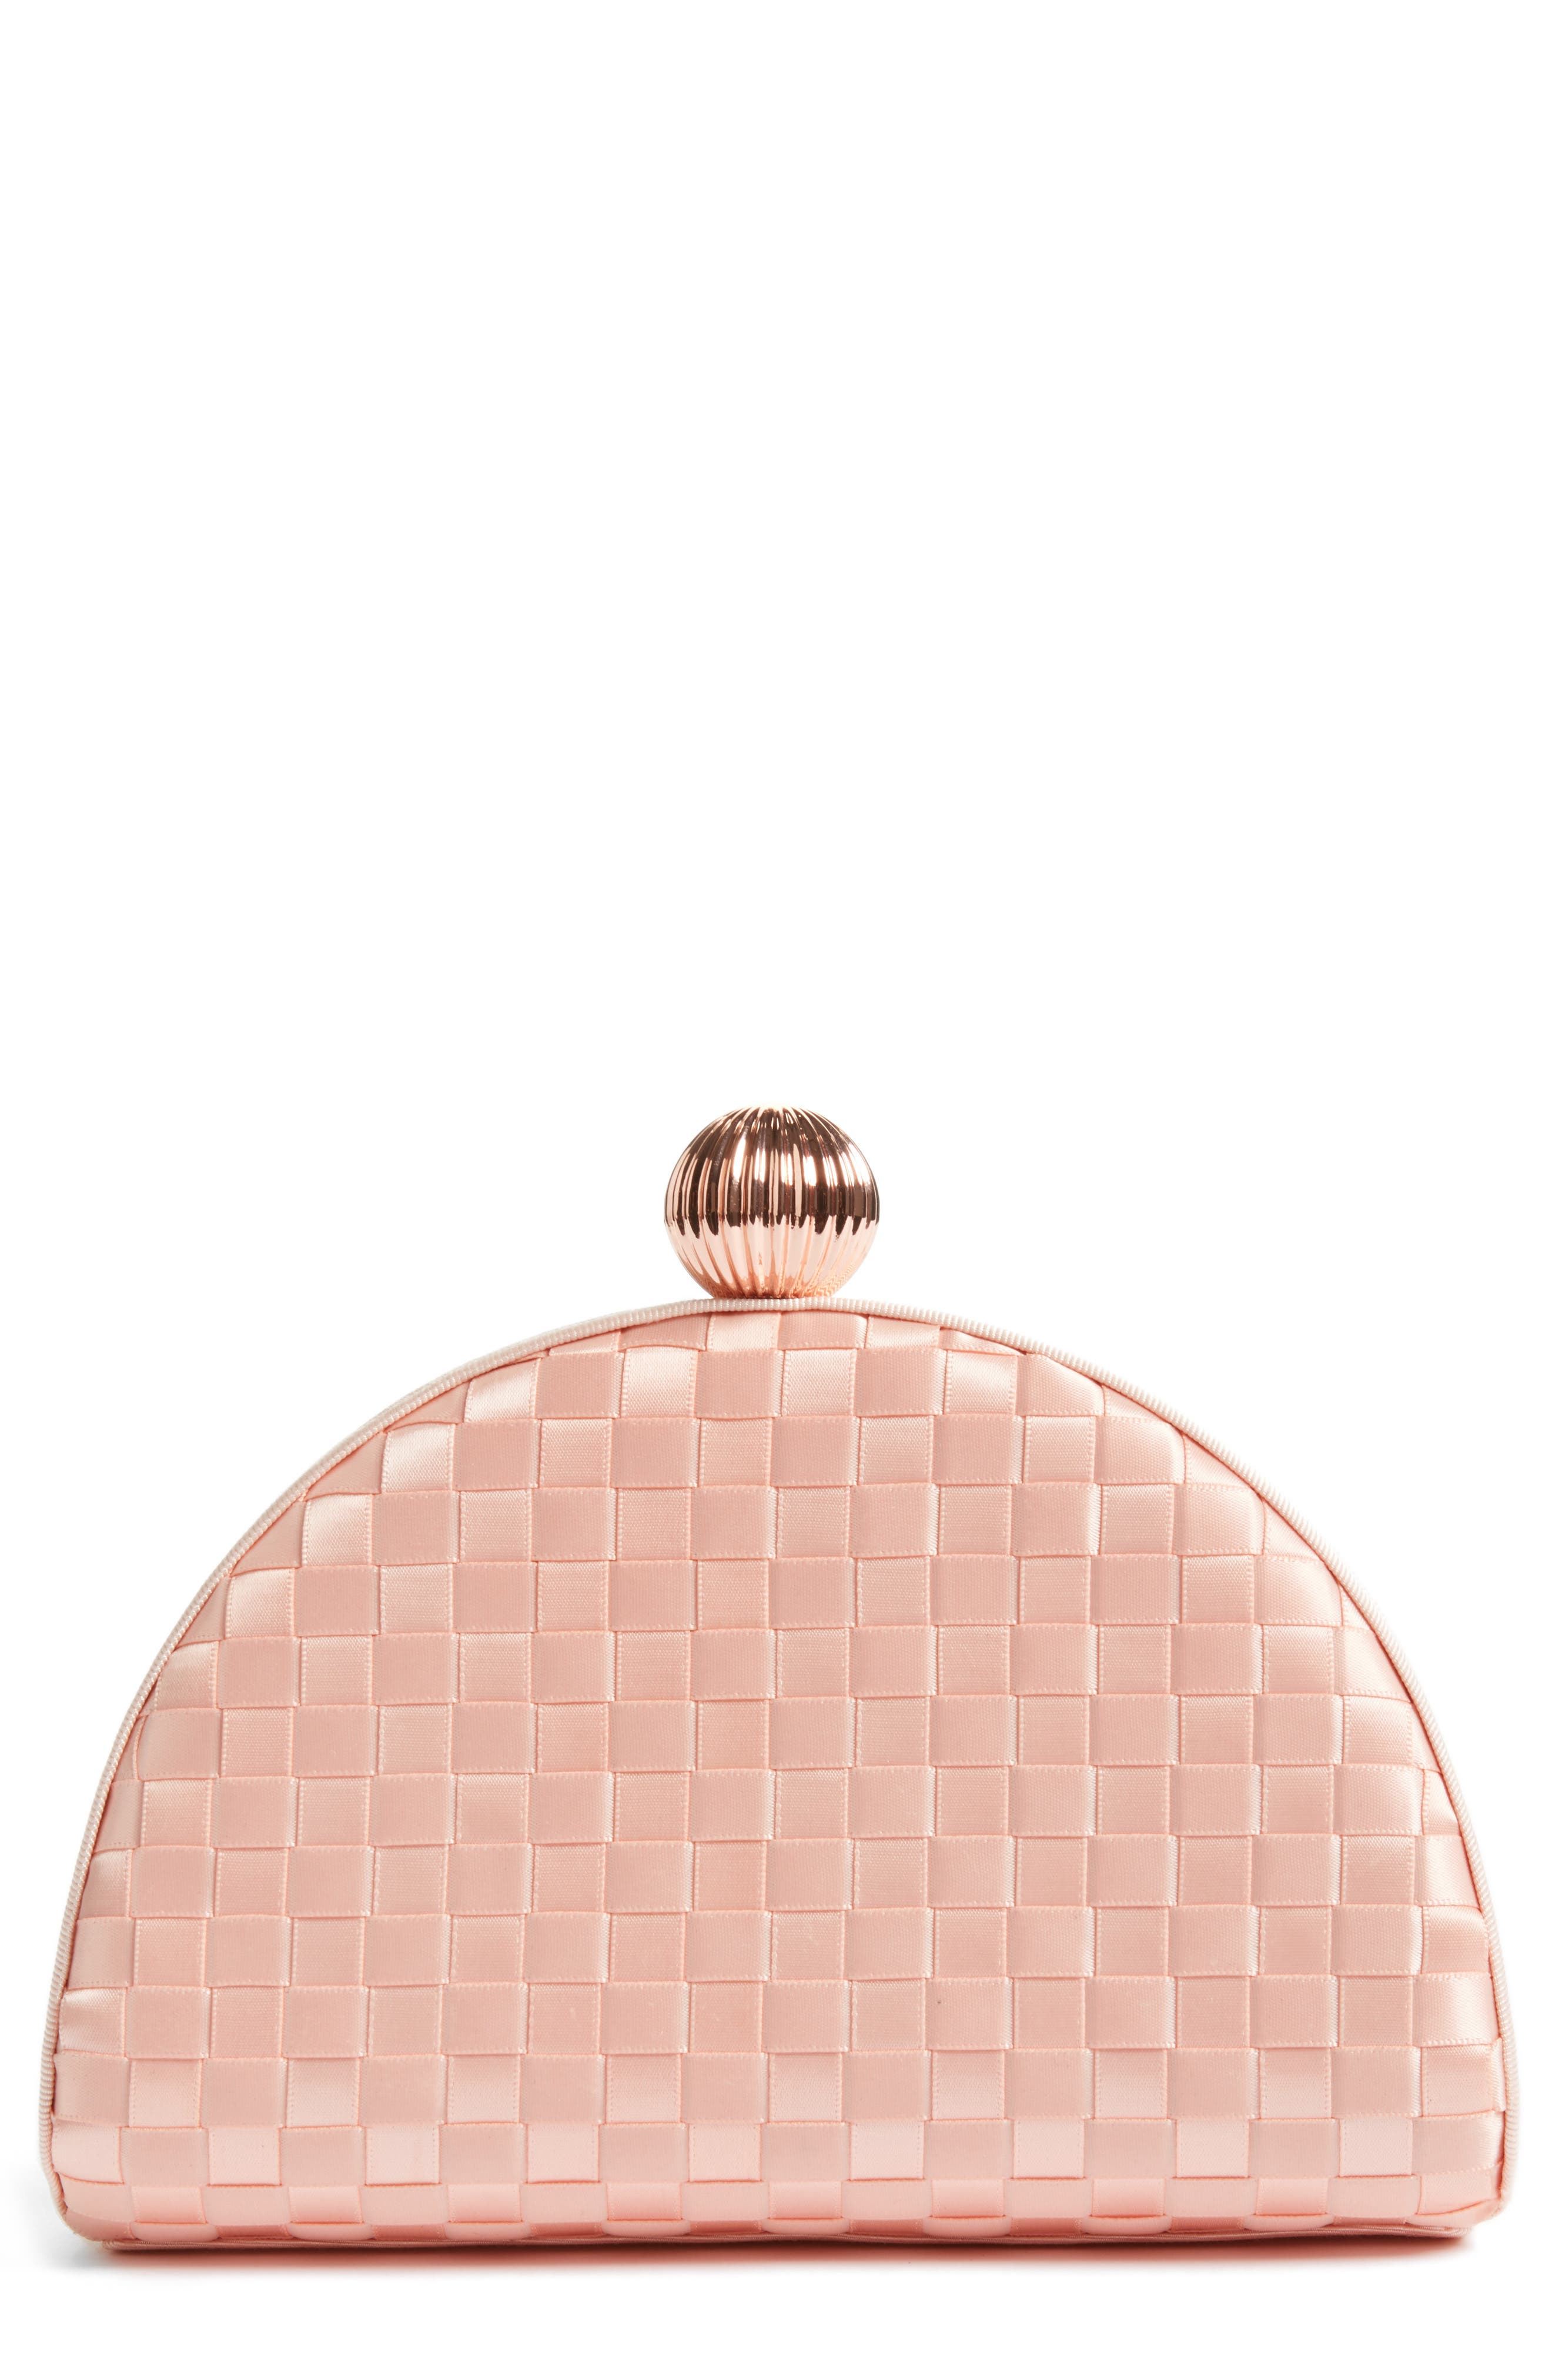 Main Image - Ted Baker London Woven Dome Clutch